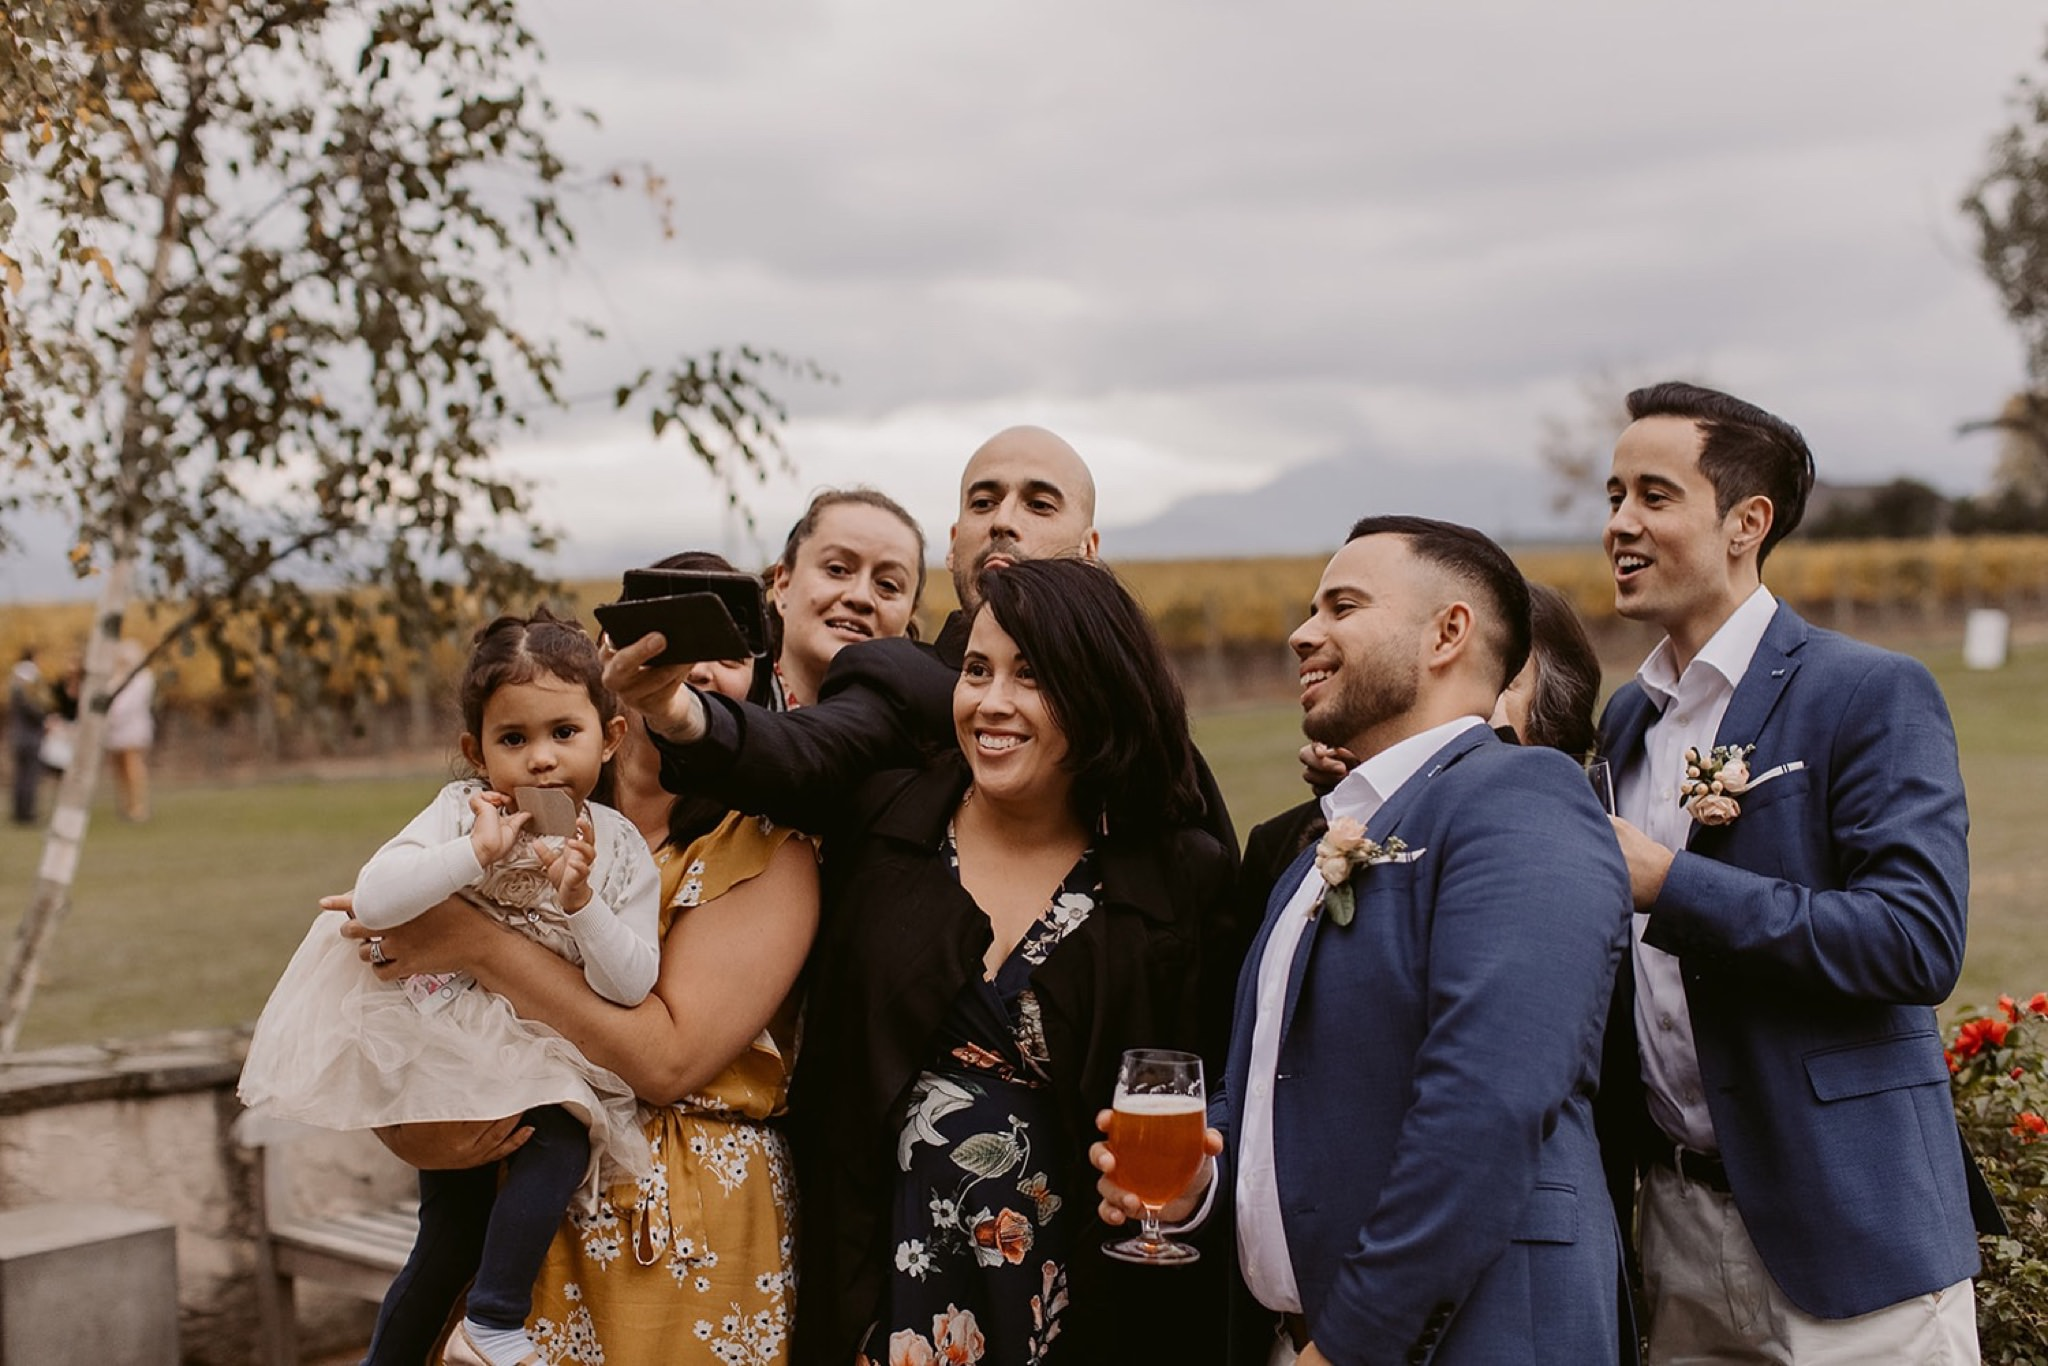 Stones of the Yarra Valley wedding photographer Ashleigh haase84.jpg